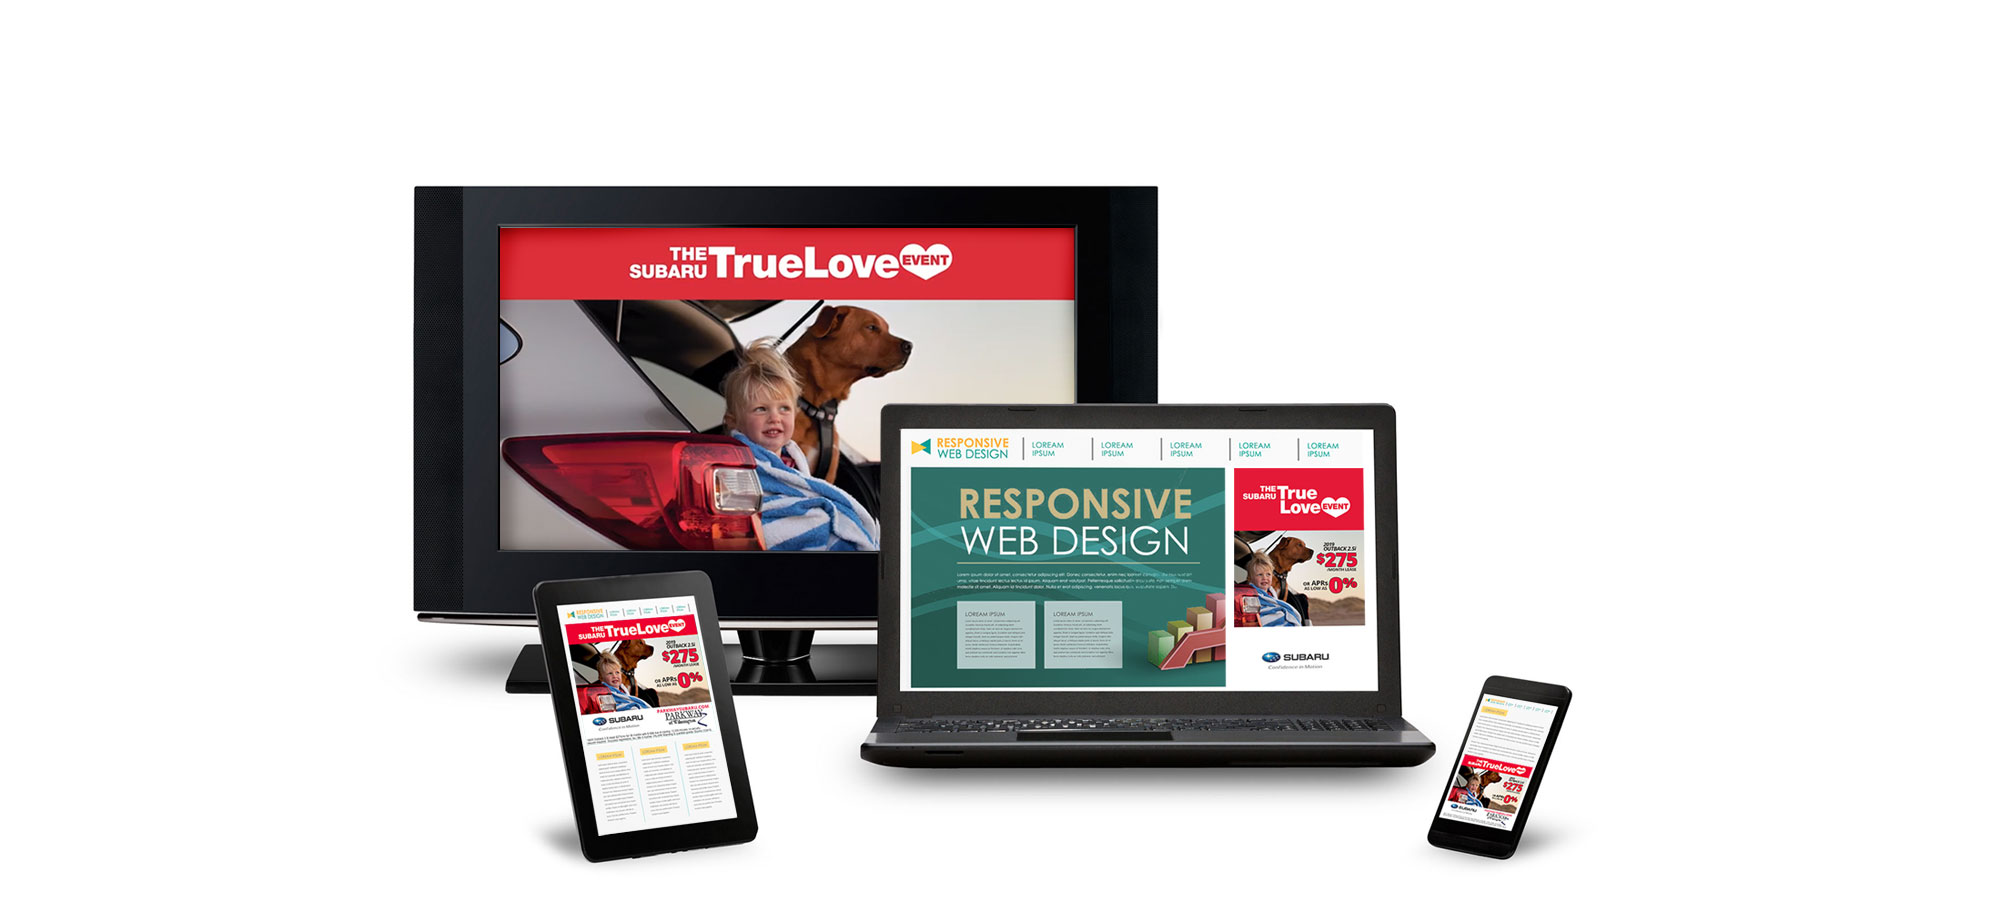 Responsive, Branded Advertising Across Multiple Channels